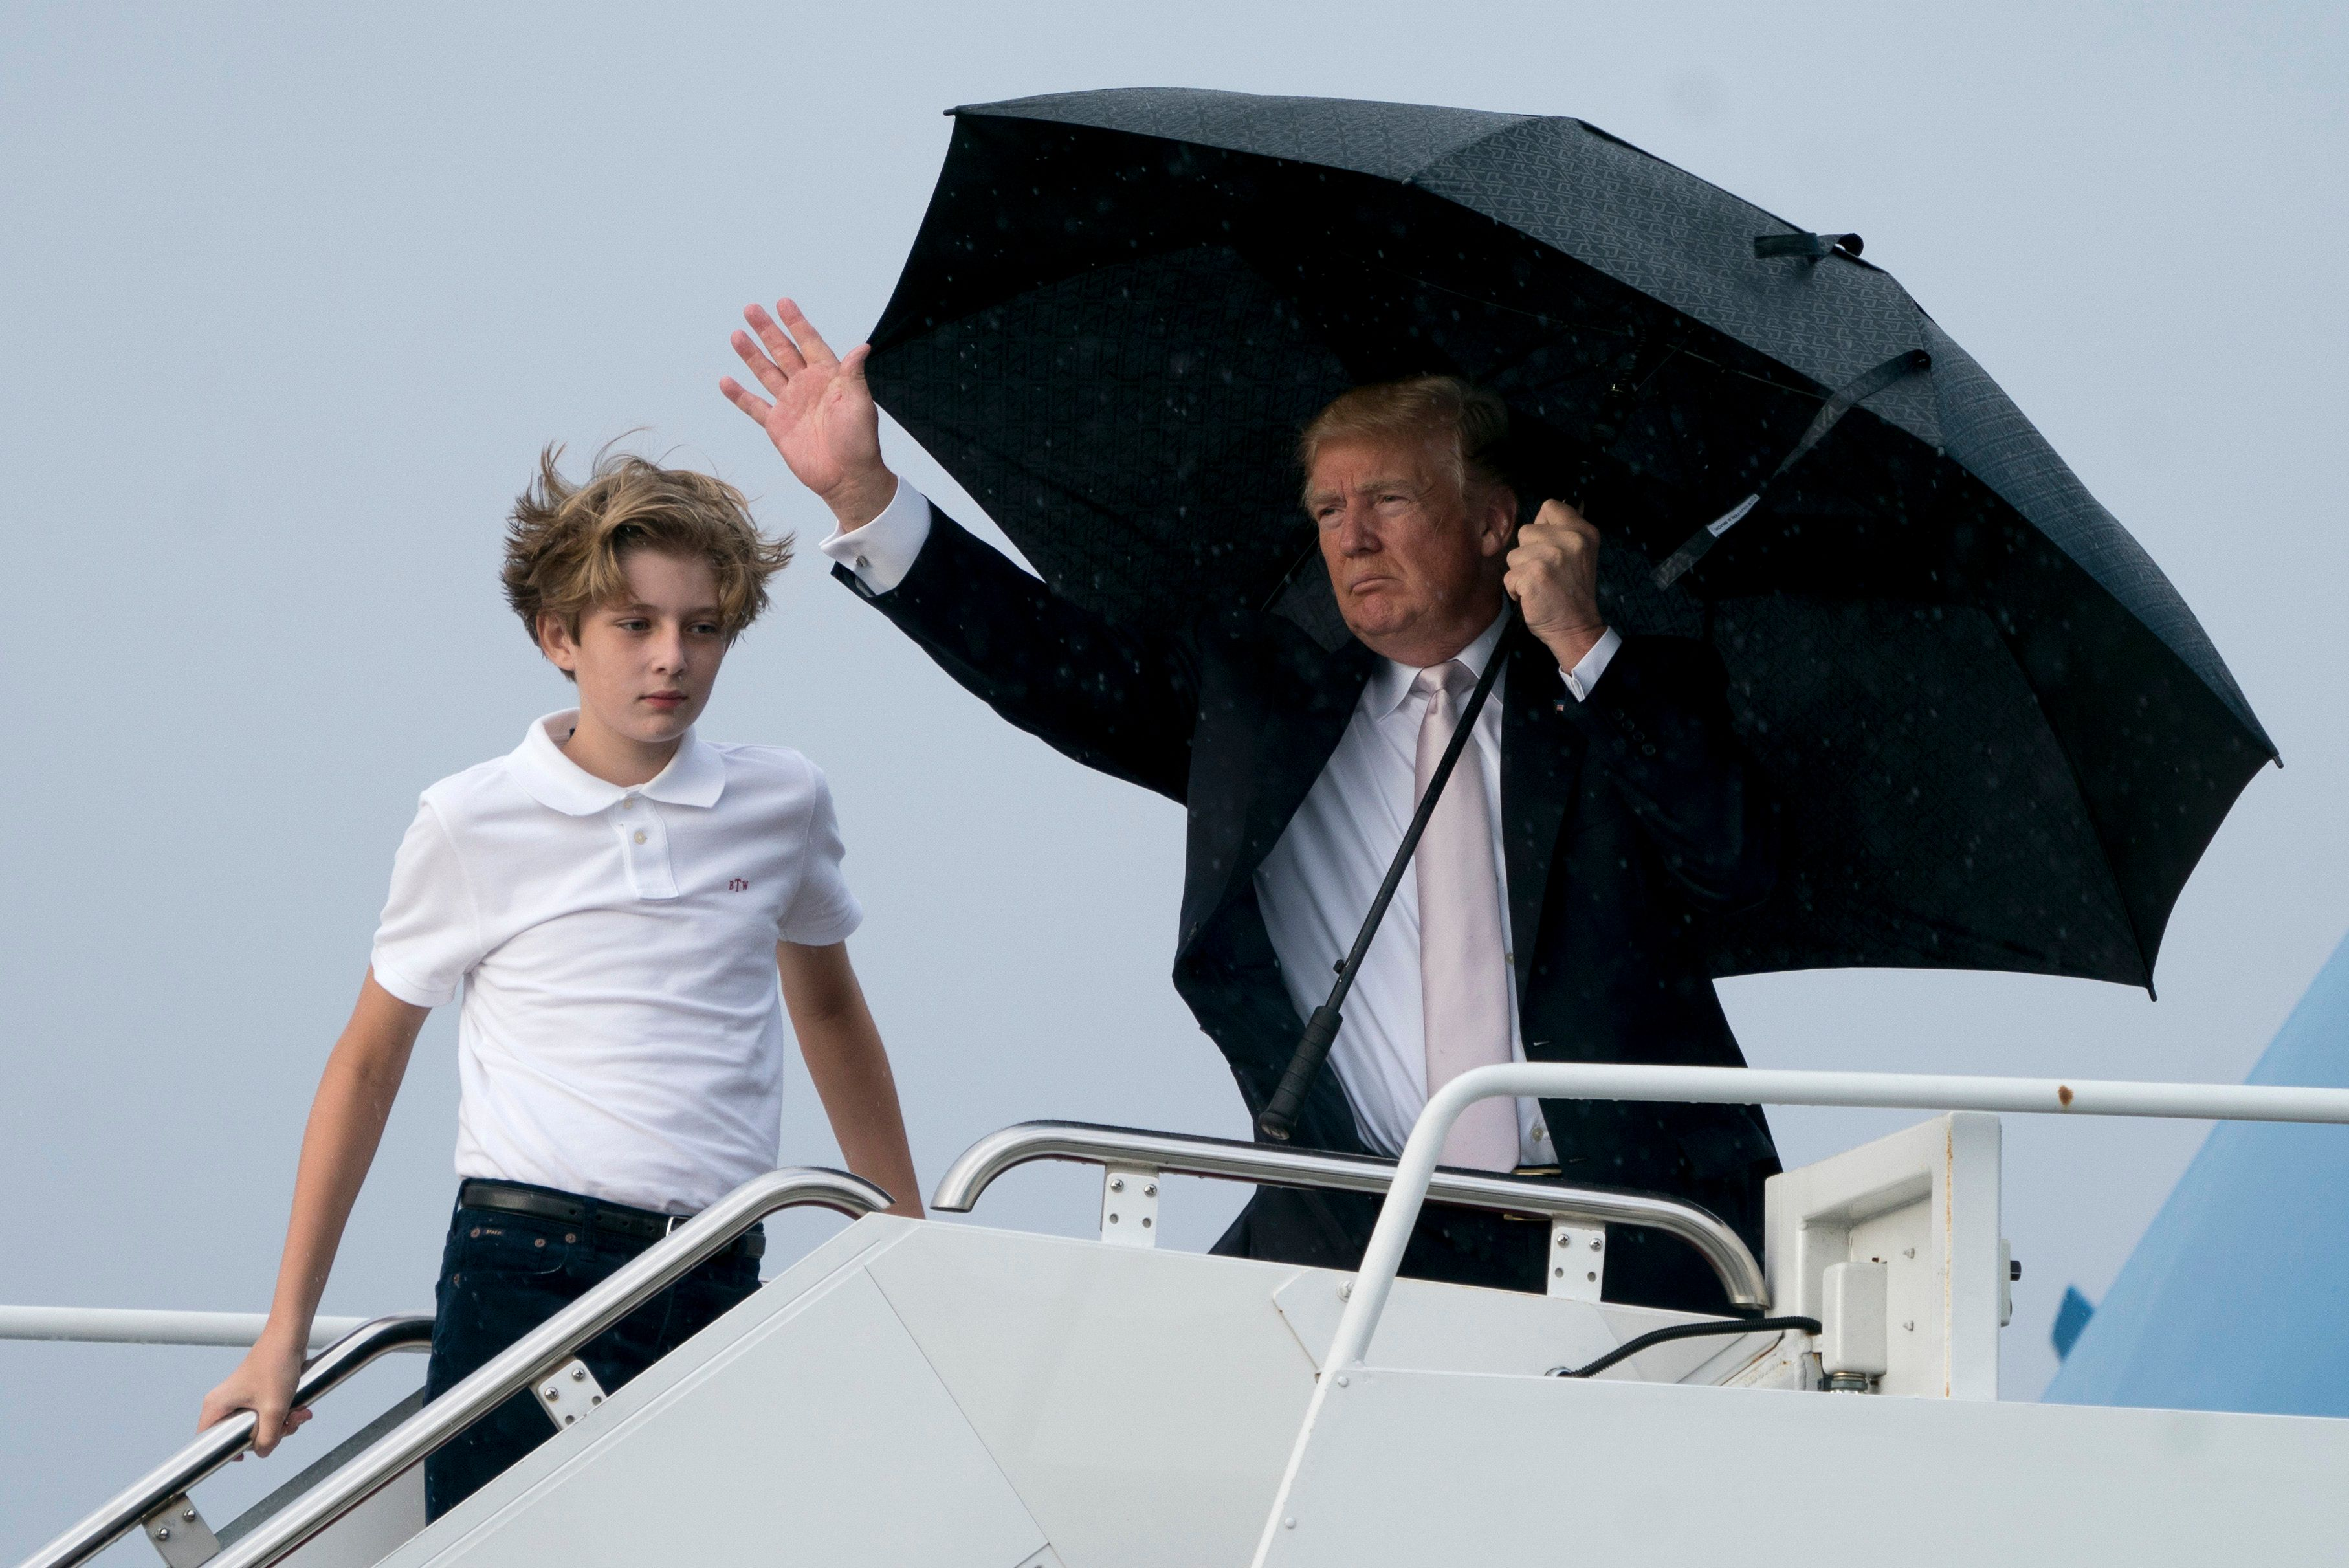 President Donald Trump and his son Barron board Air Force One at Palm Beach International Airport in West Palm Beach, Fla., M